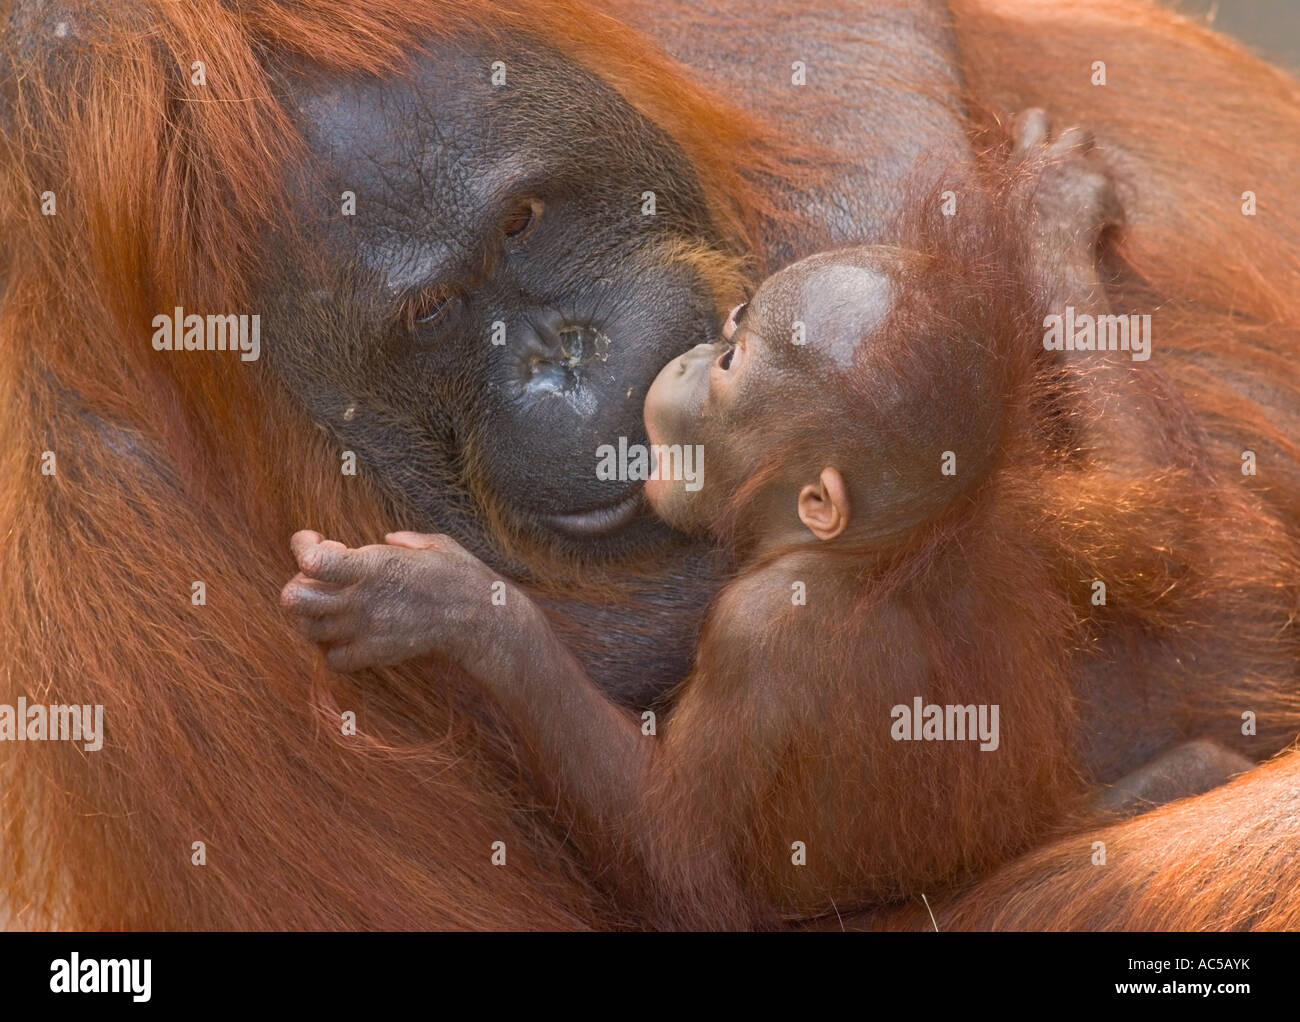 A 23 weeks old male orang utan baby (Pongo pygmaeus) kissing its mother - Stock Image